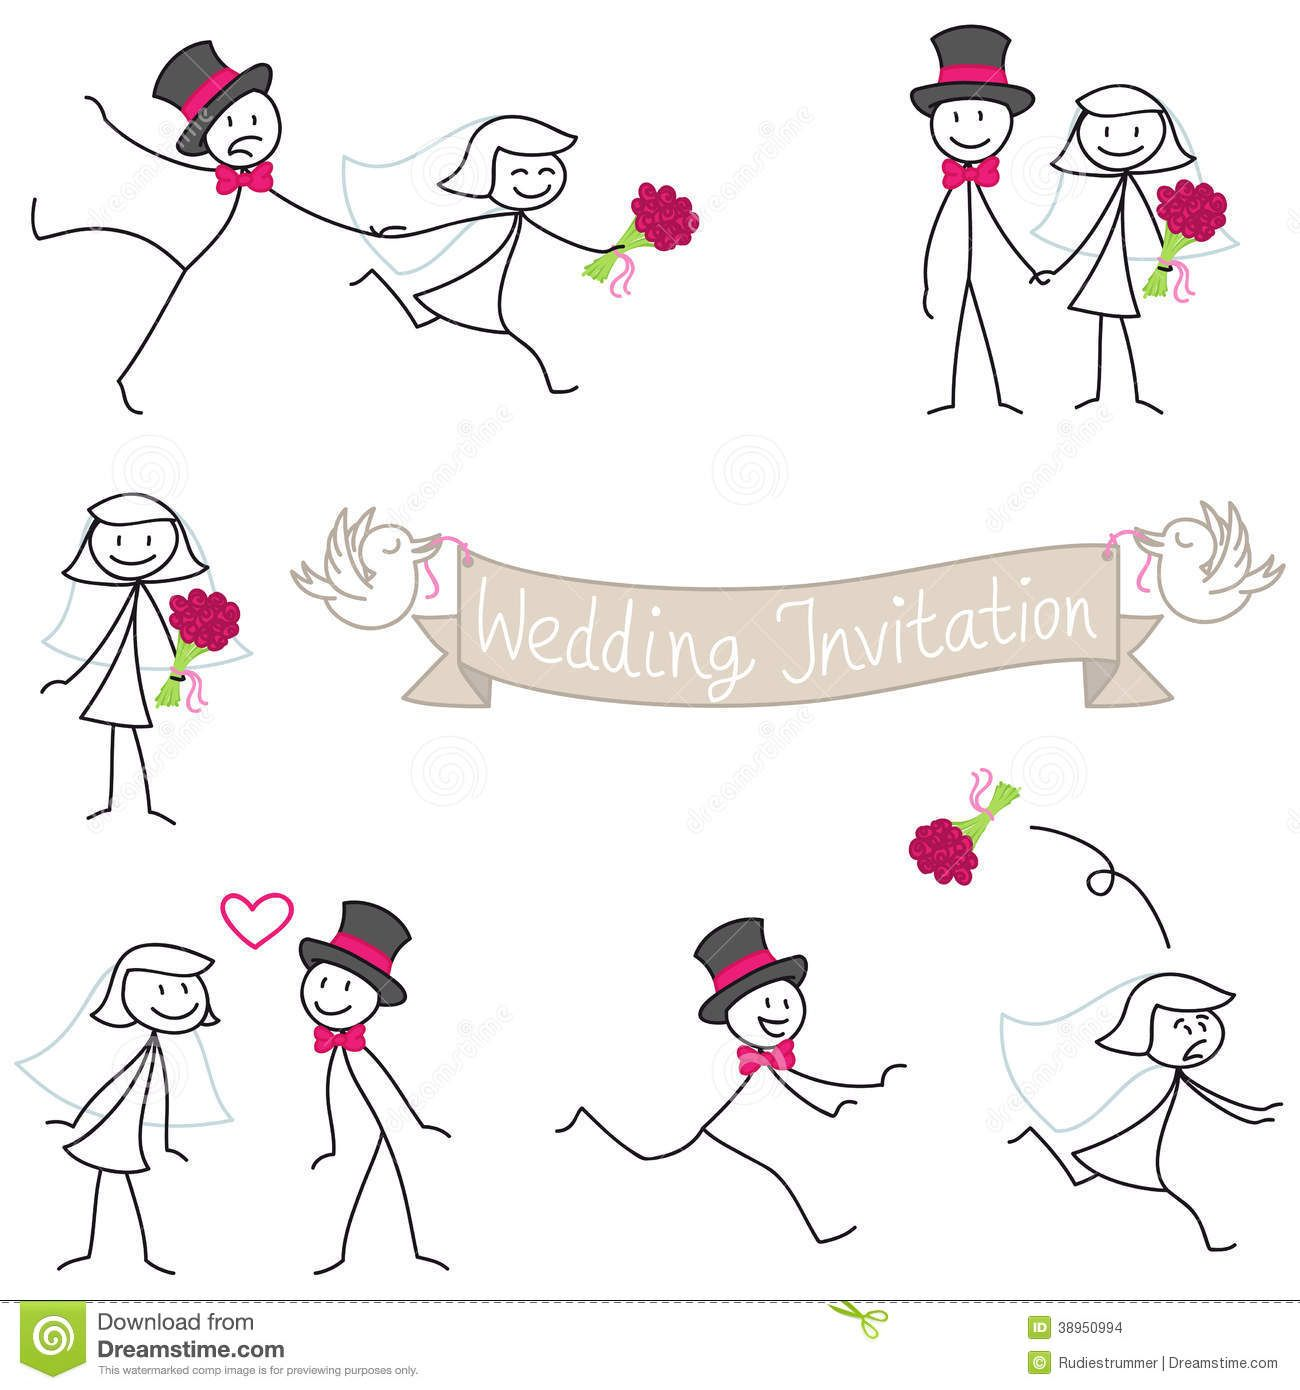 Stick Figure Wedding - Google Search